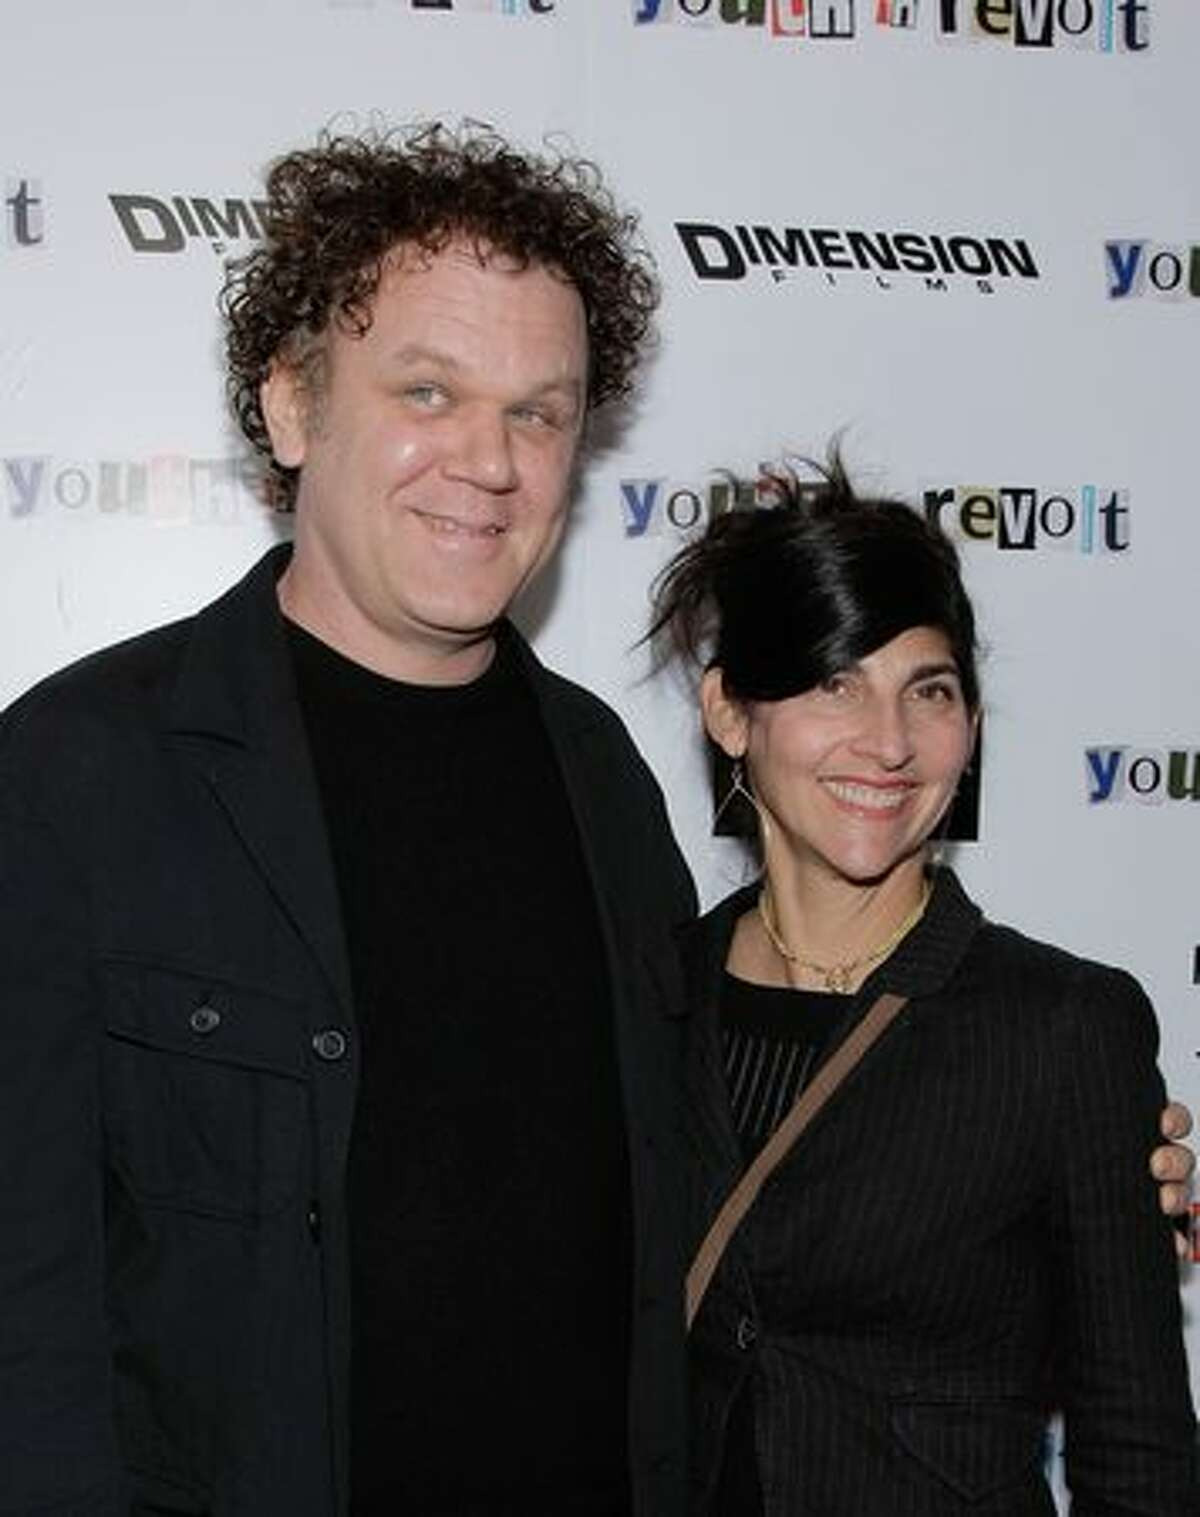 John C. Reilly (L) and his wife Alison Dickey (R) attend the premiere of